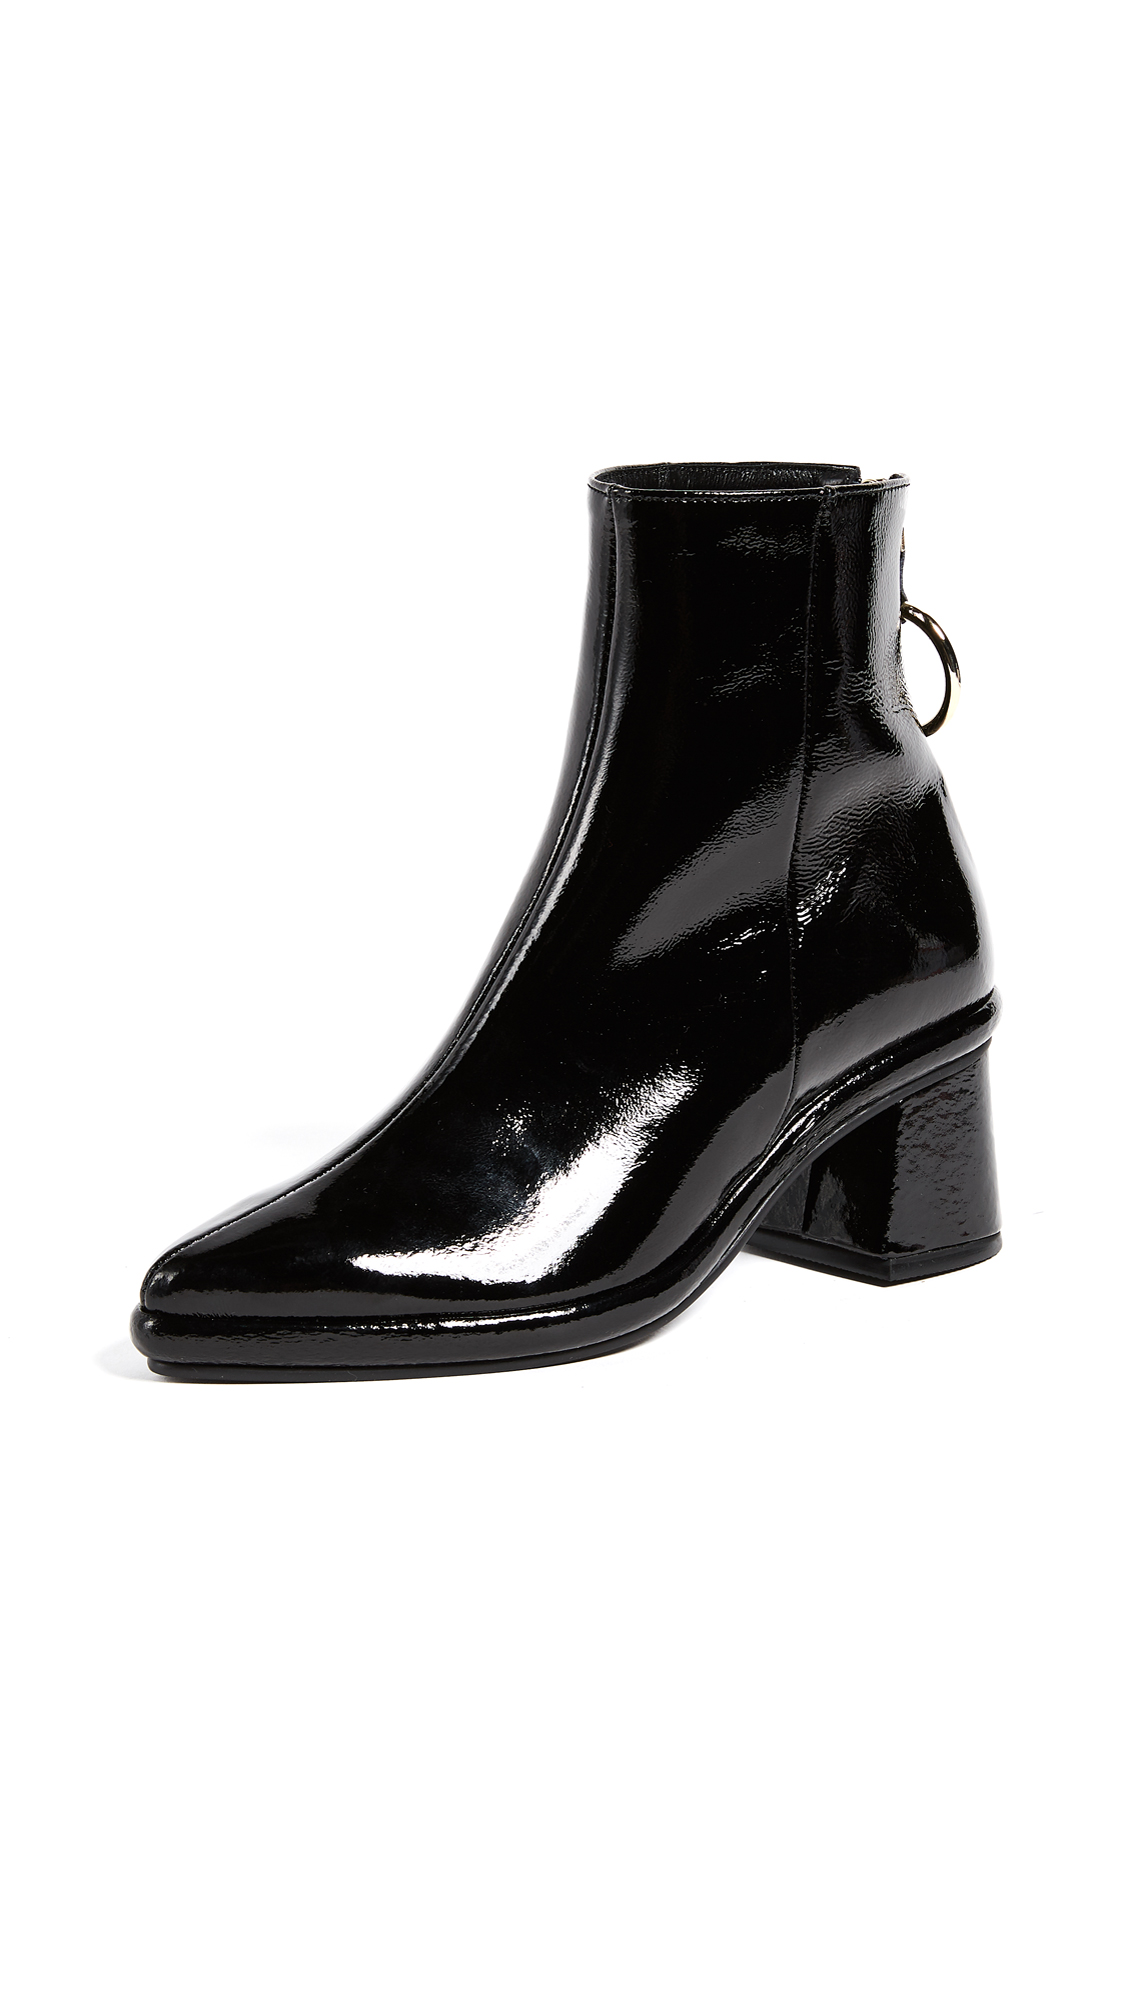 Reike Nen Ring Mid Booties - Black